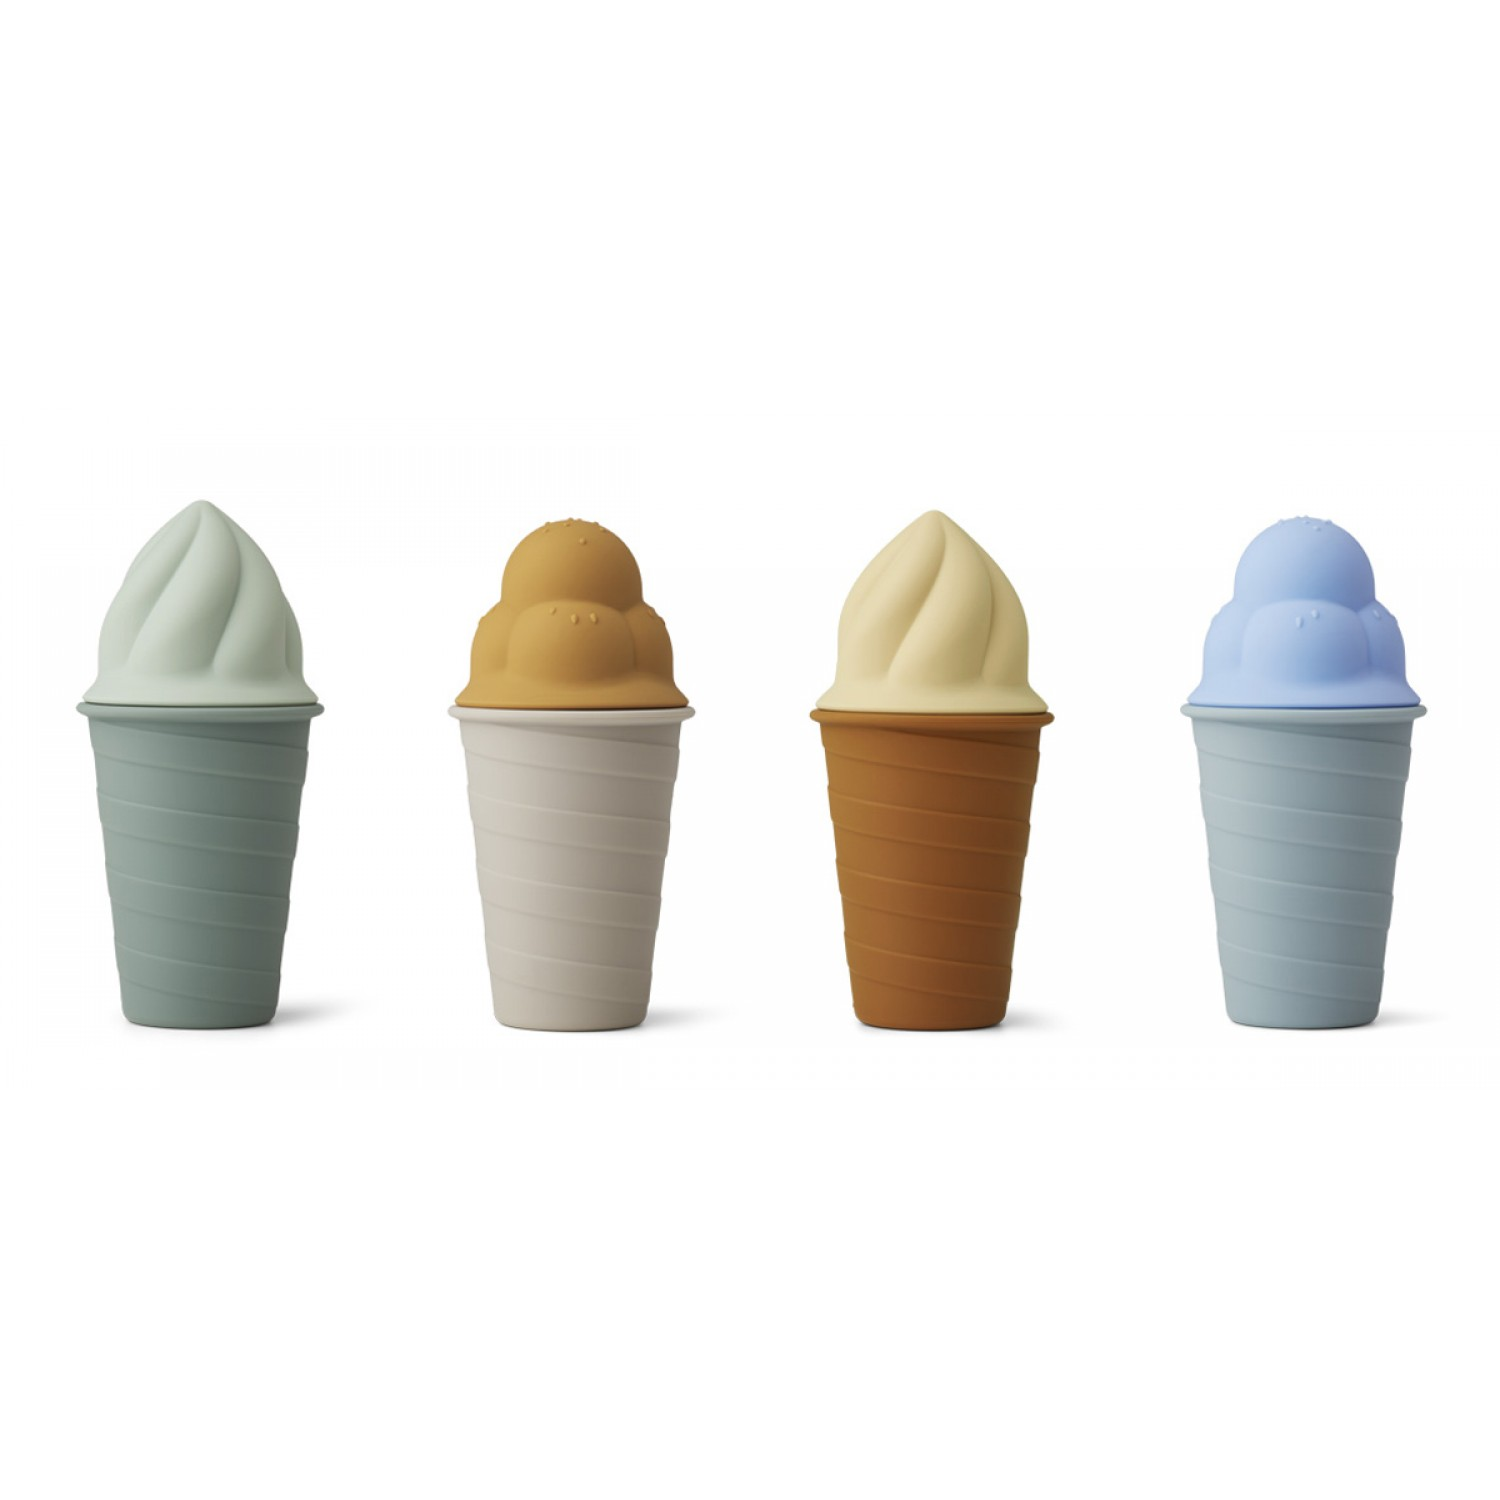 Bay ice cream toy 4-pack - Sky blue multi mix